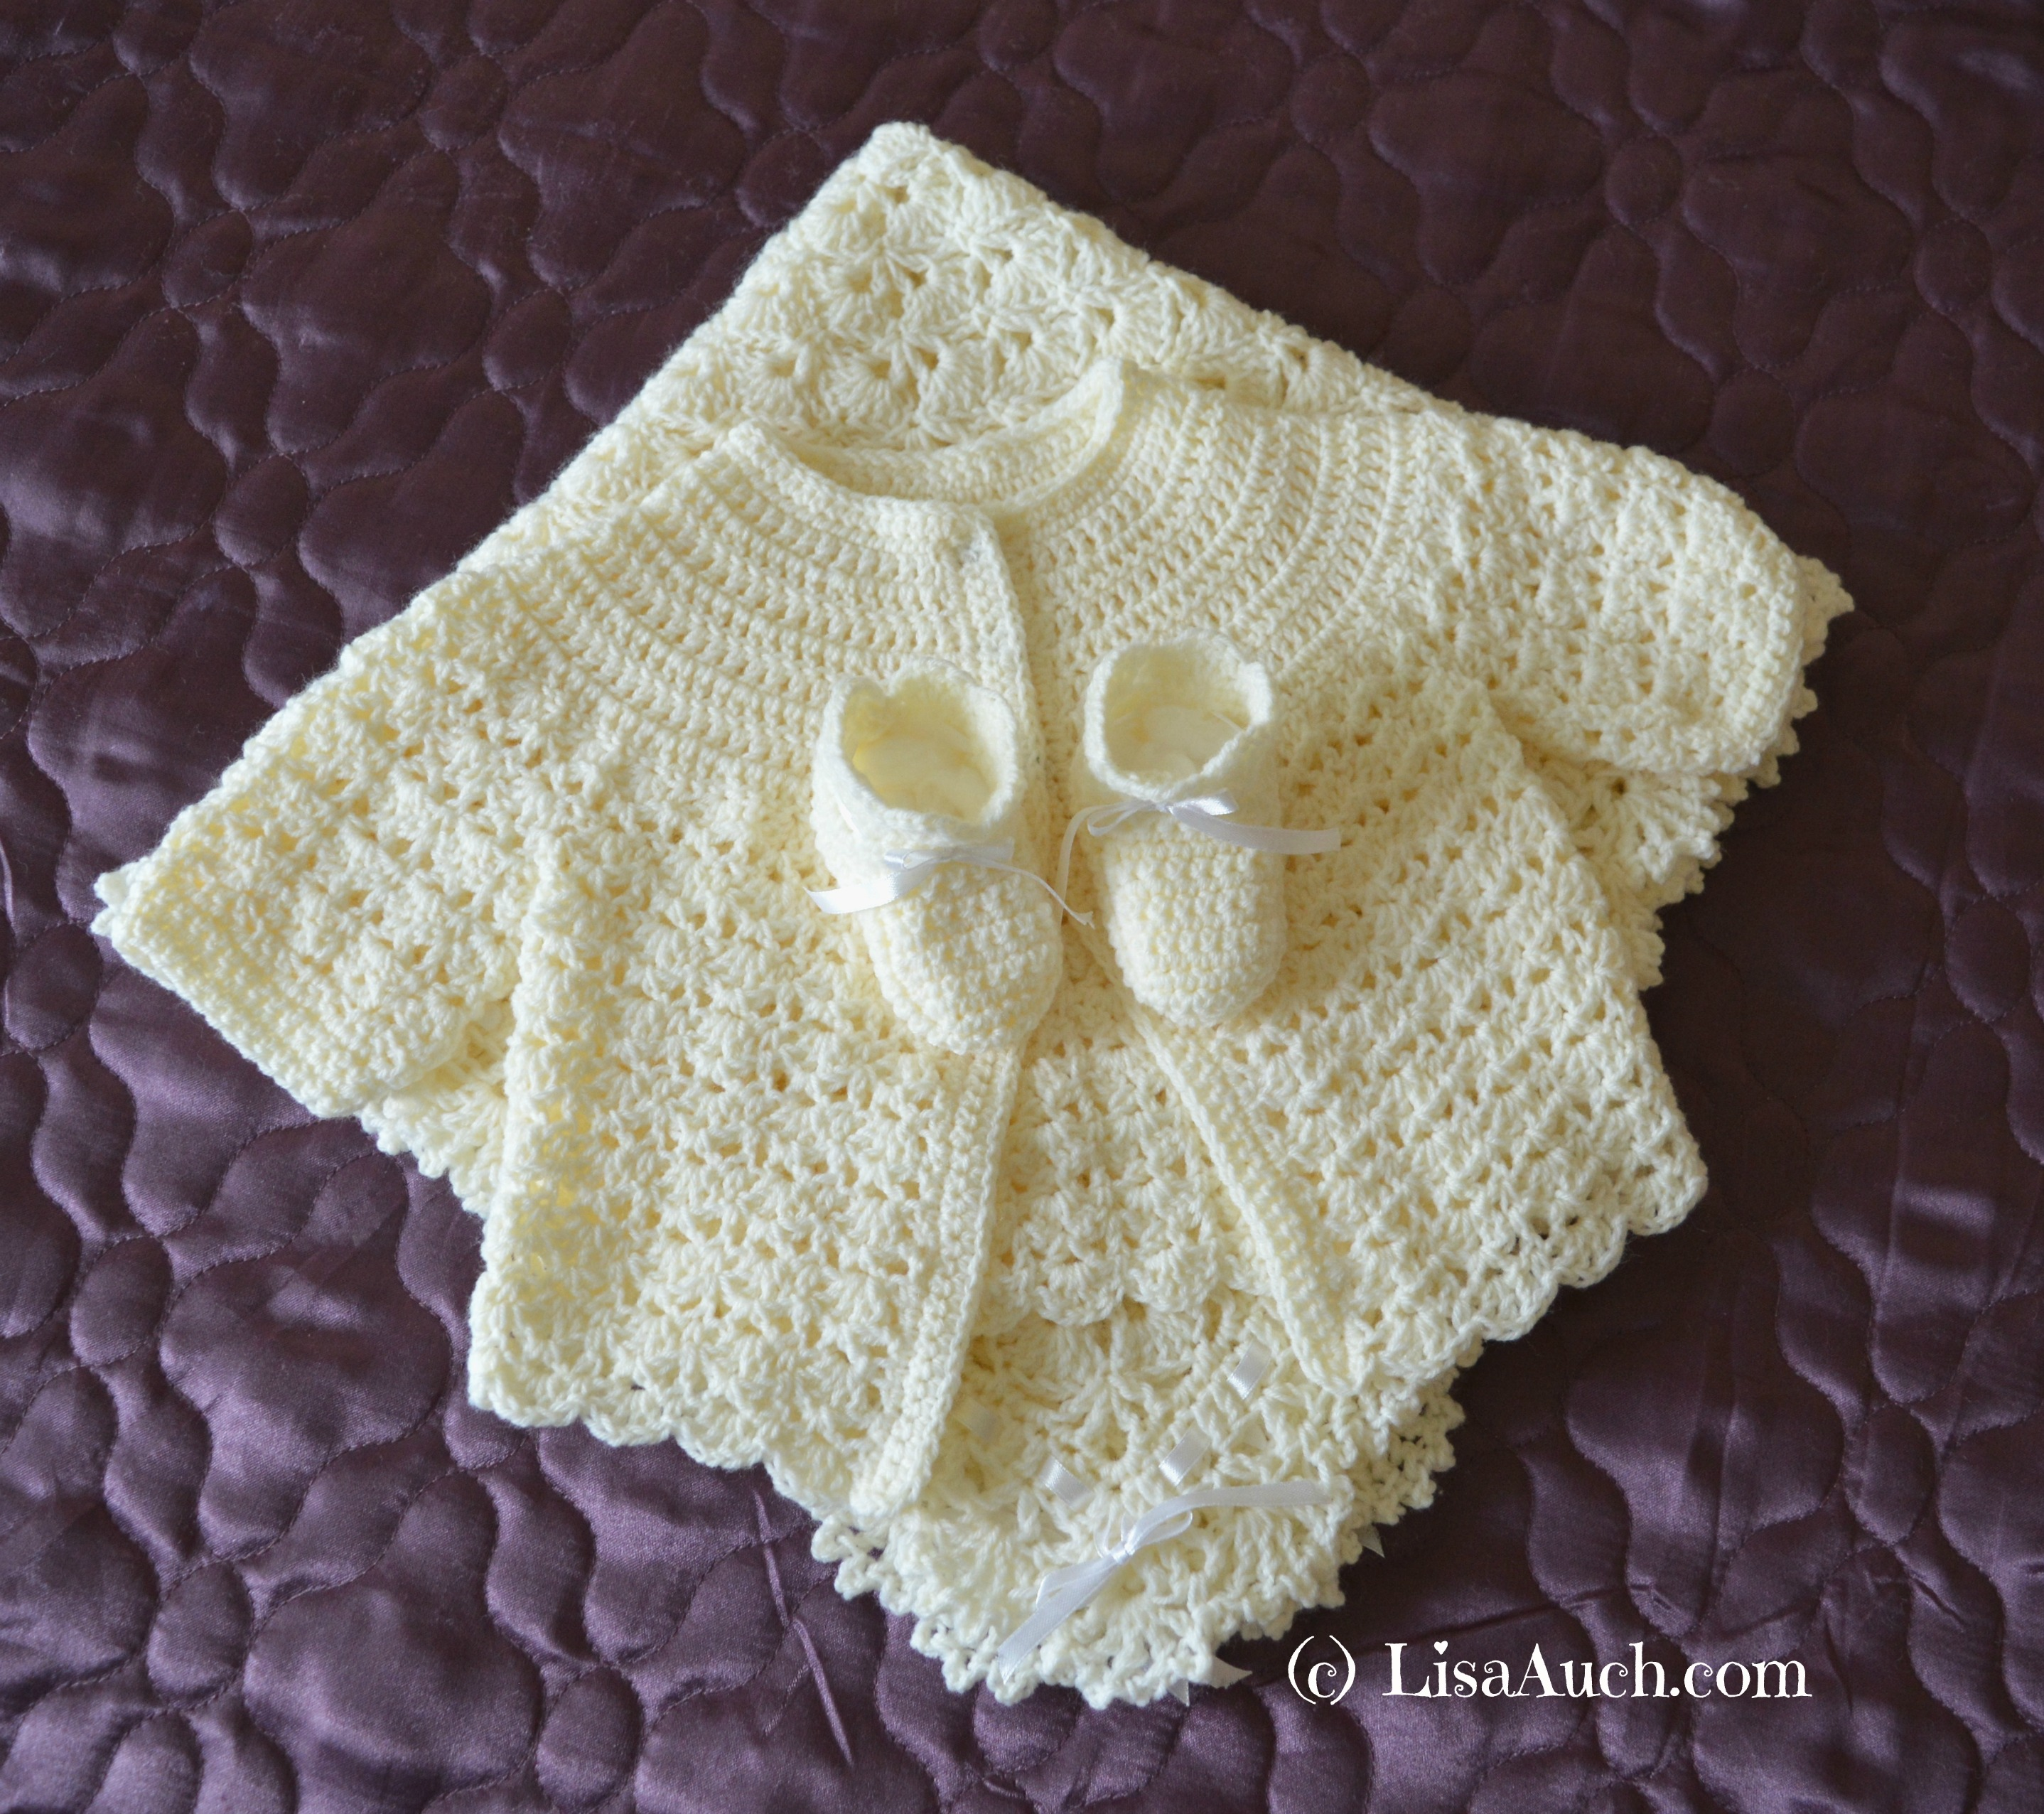 Free Crochet Baby Cardigan Patterns | LisaAuch.com